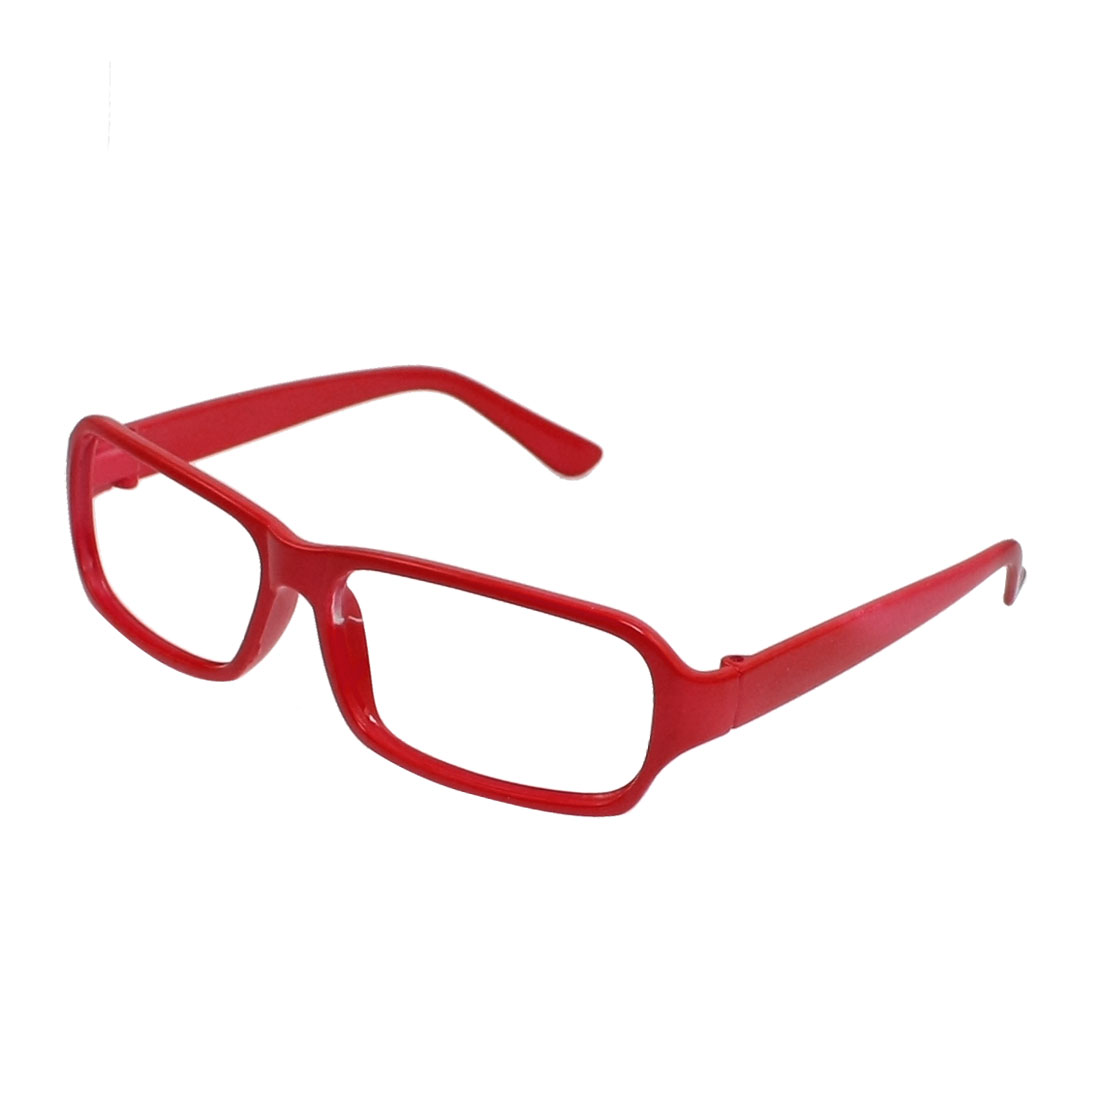 Red Plastic Single Bridge Full Rim Glasses Eyeglasses Frame for Ladies